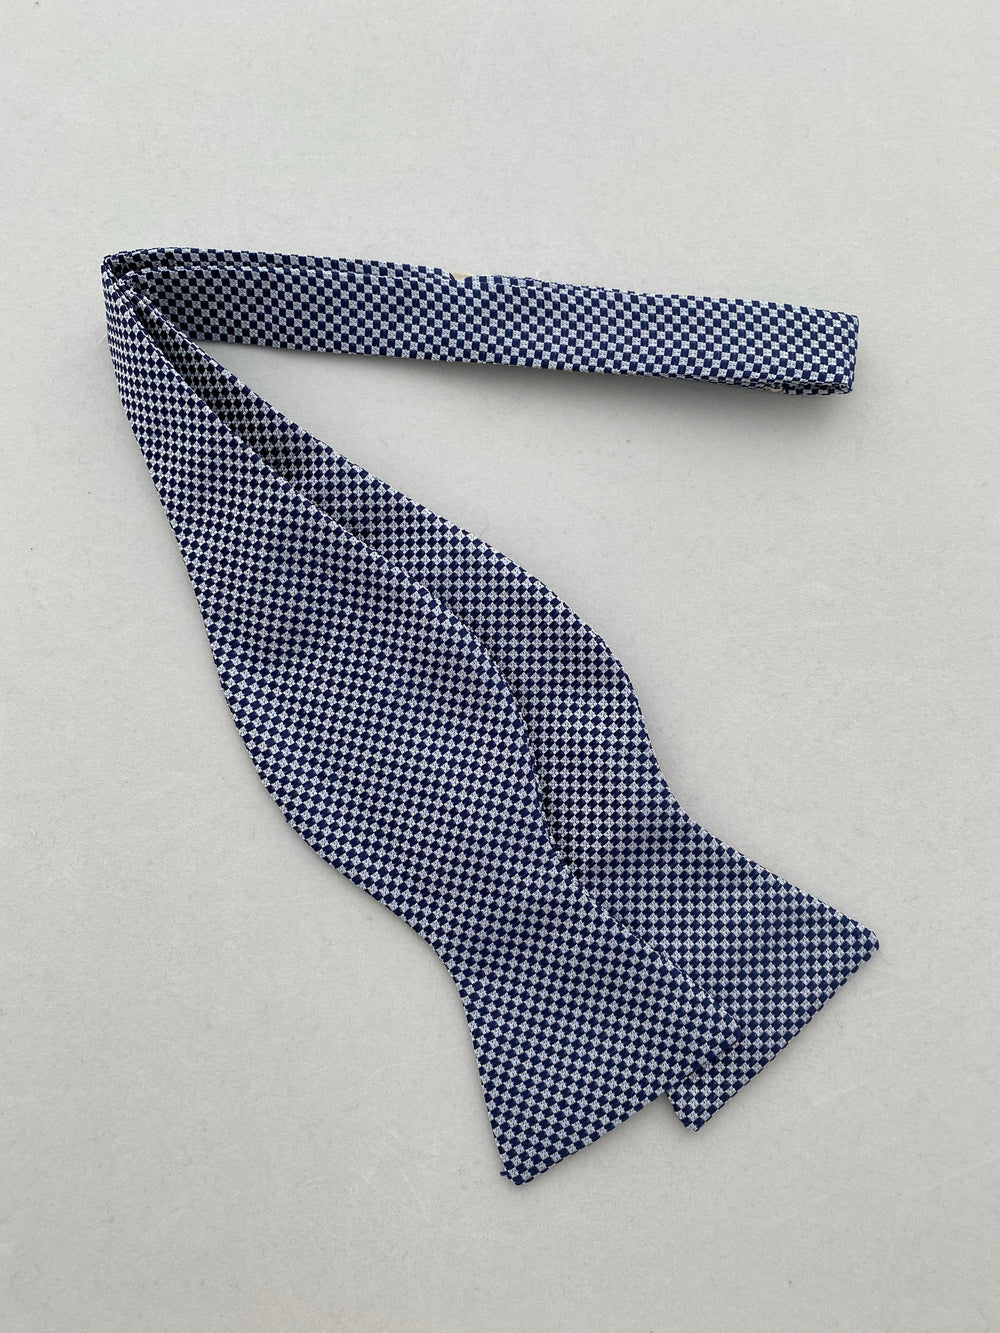 MCM Studio Bow Tie Made In Italy by Fratellini Navy Dobby